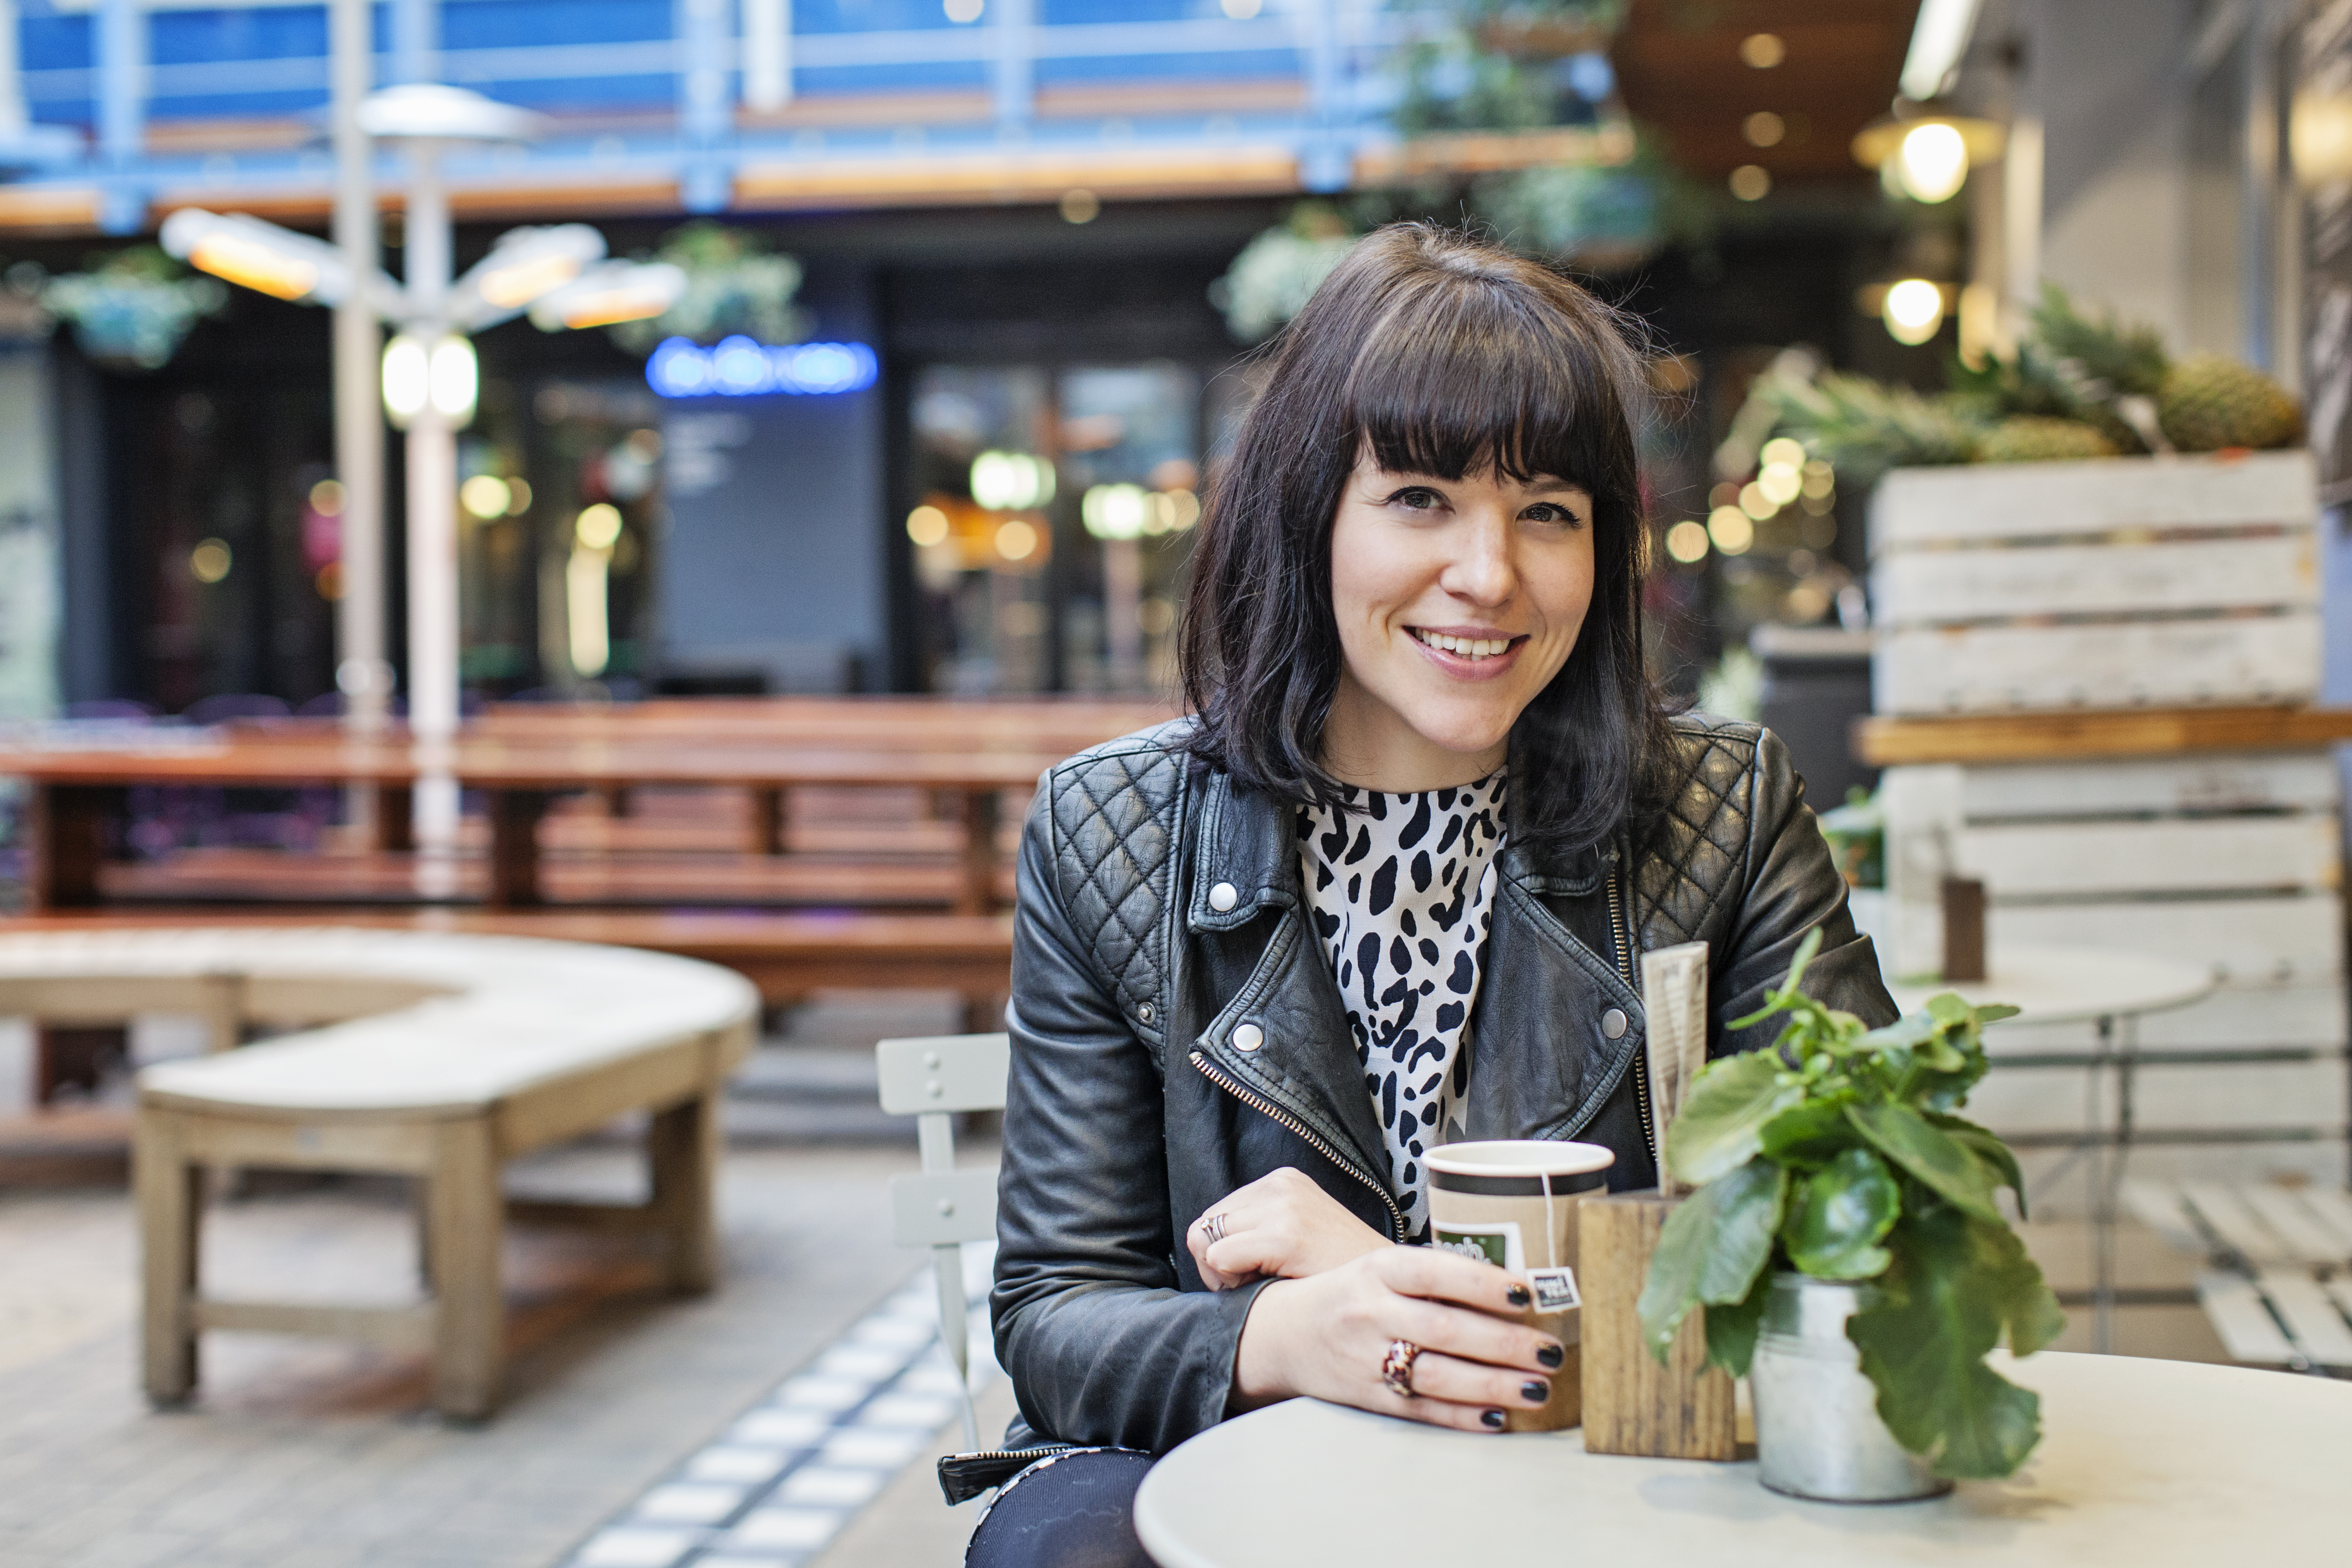 Steph Douglas, founder of Don't Buy Her Flowers and writer of The Sisterhood (And All That) blog, photographed in Central London.